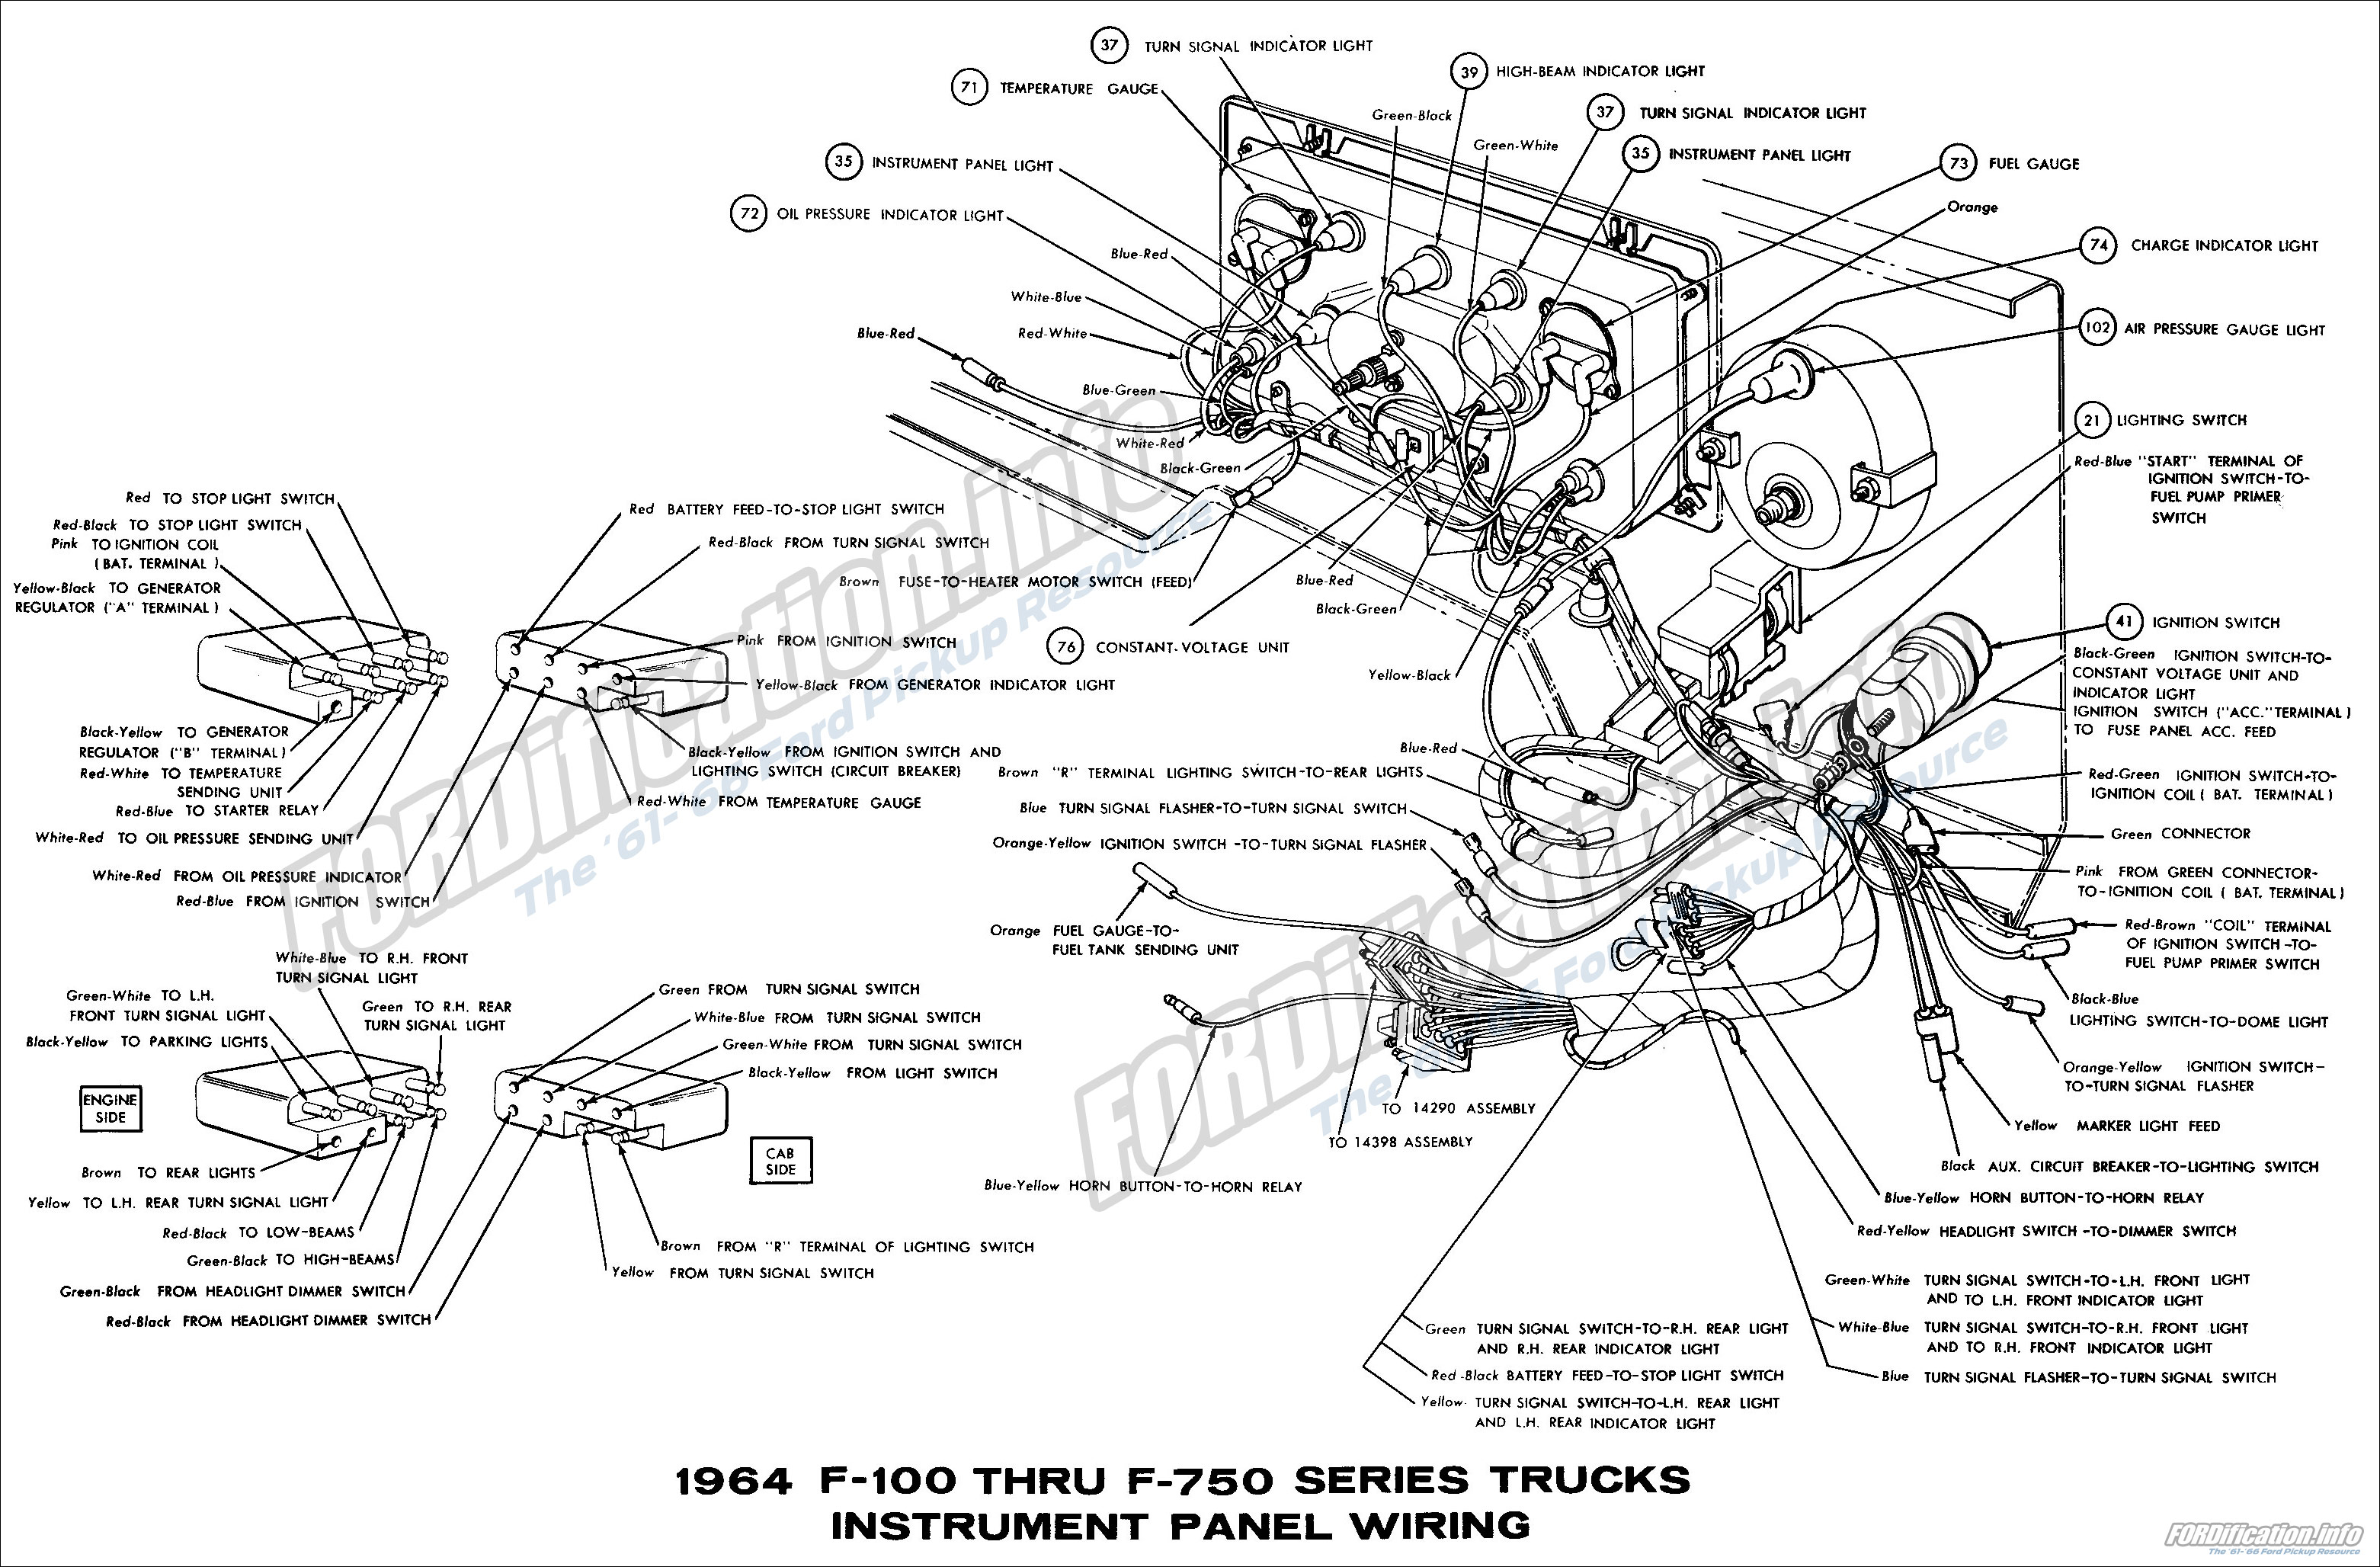 Miraculous 1964 Ford Truck Wiring Diagrams Fordification Info The 61 66 Wiring Digital Resources Cettecompassionincorg